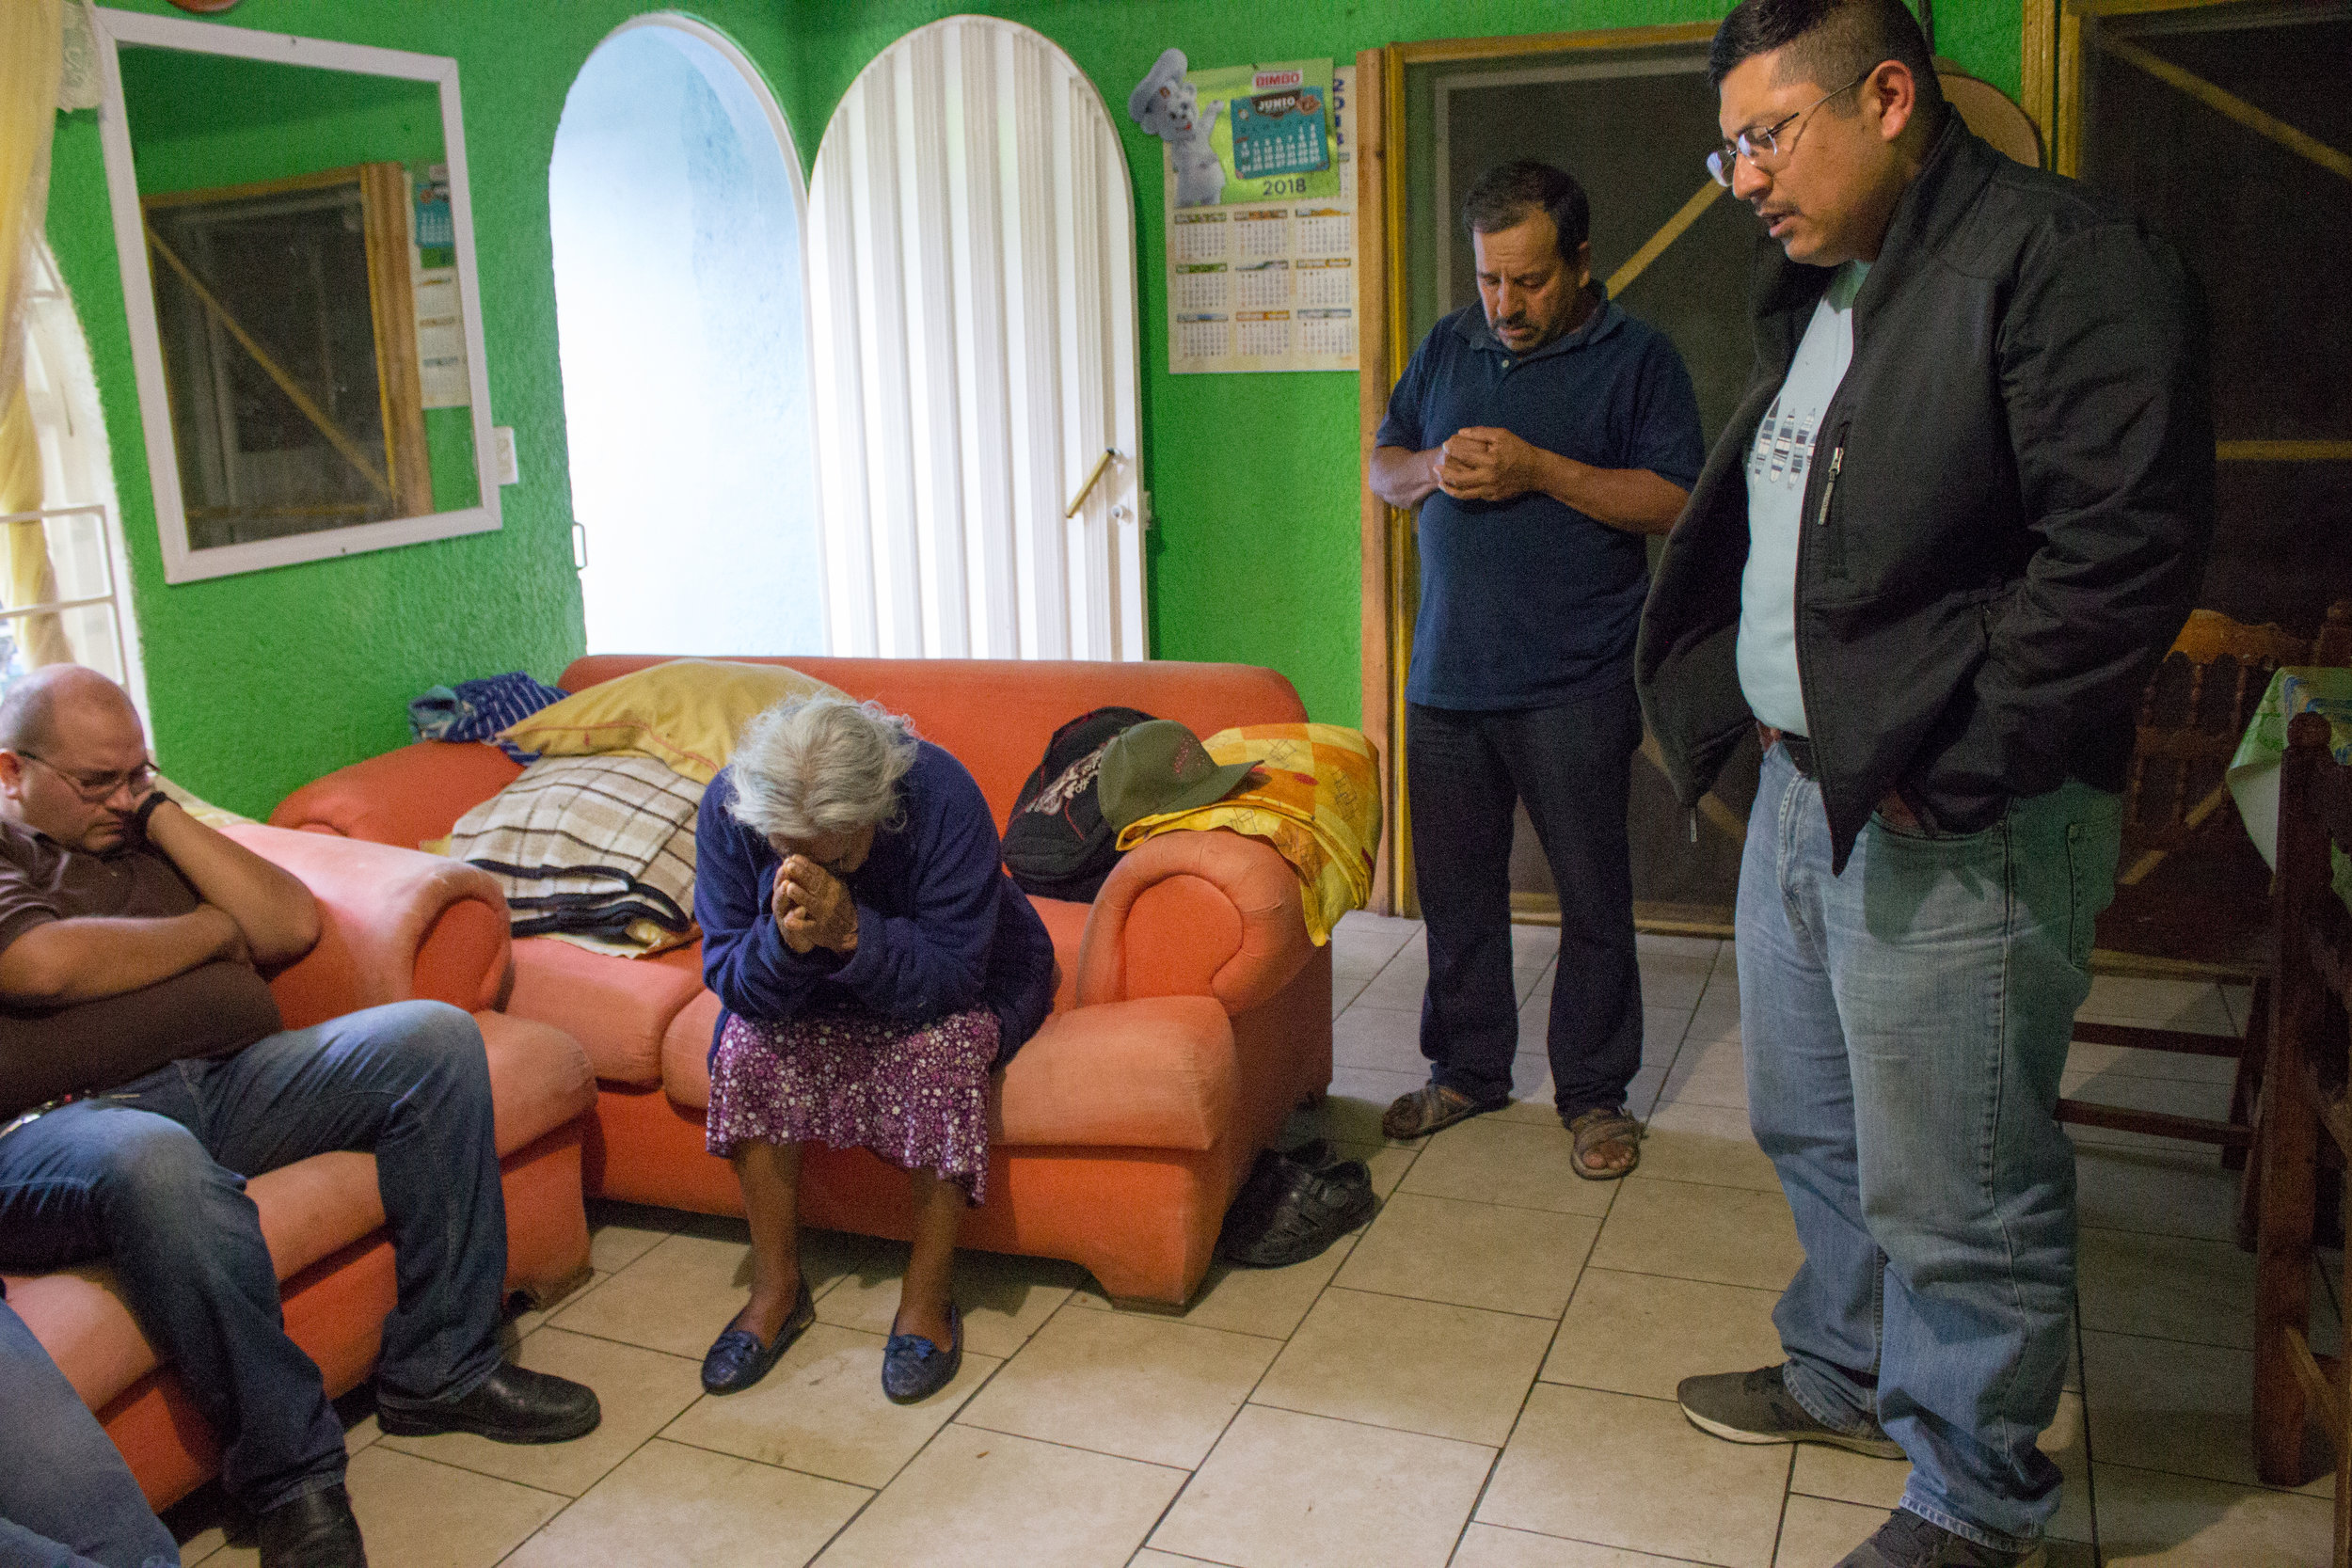 Not long after landing in Oaxaca City on June 25, we drove to the home of Junior's relatives. His aunt was in the hospital throughout our visit. Here, the family prays before Junior's uncle takes food to the hospital for the staff there.